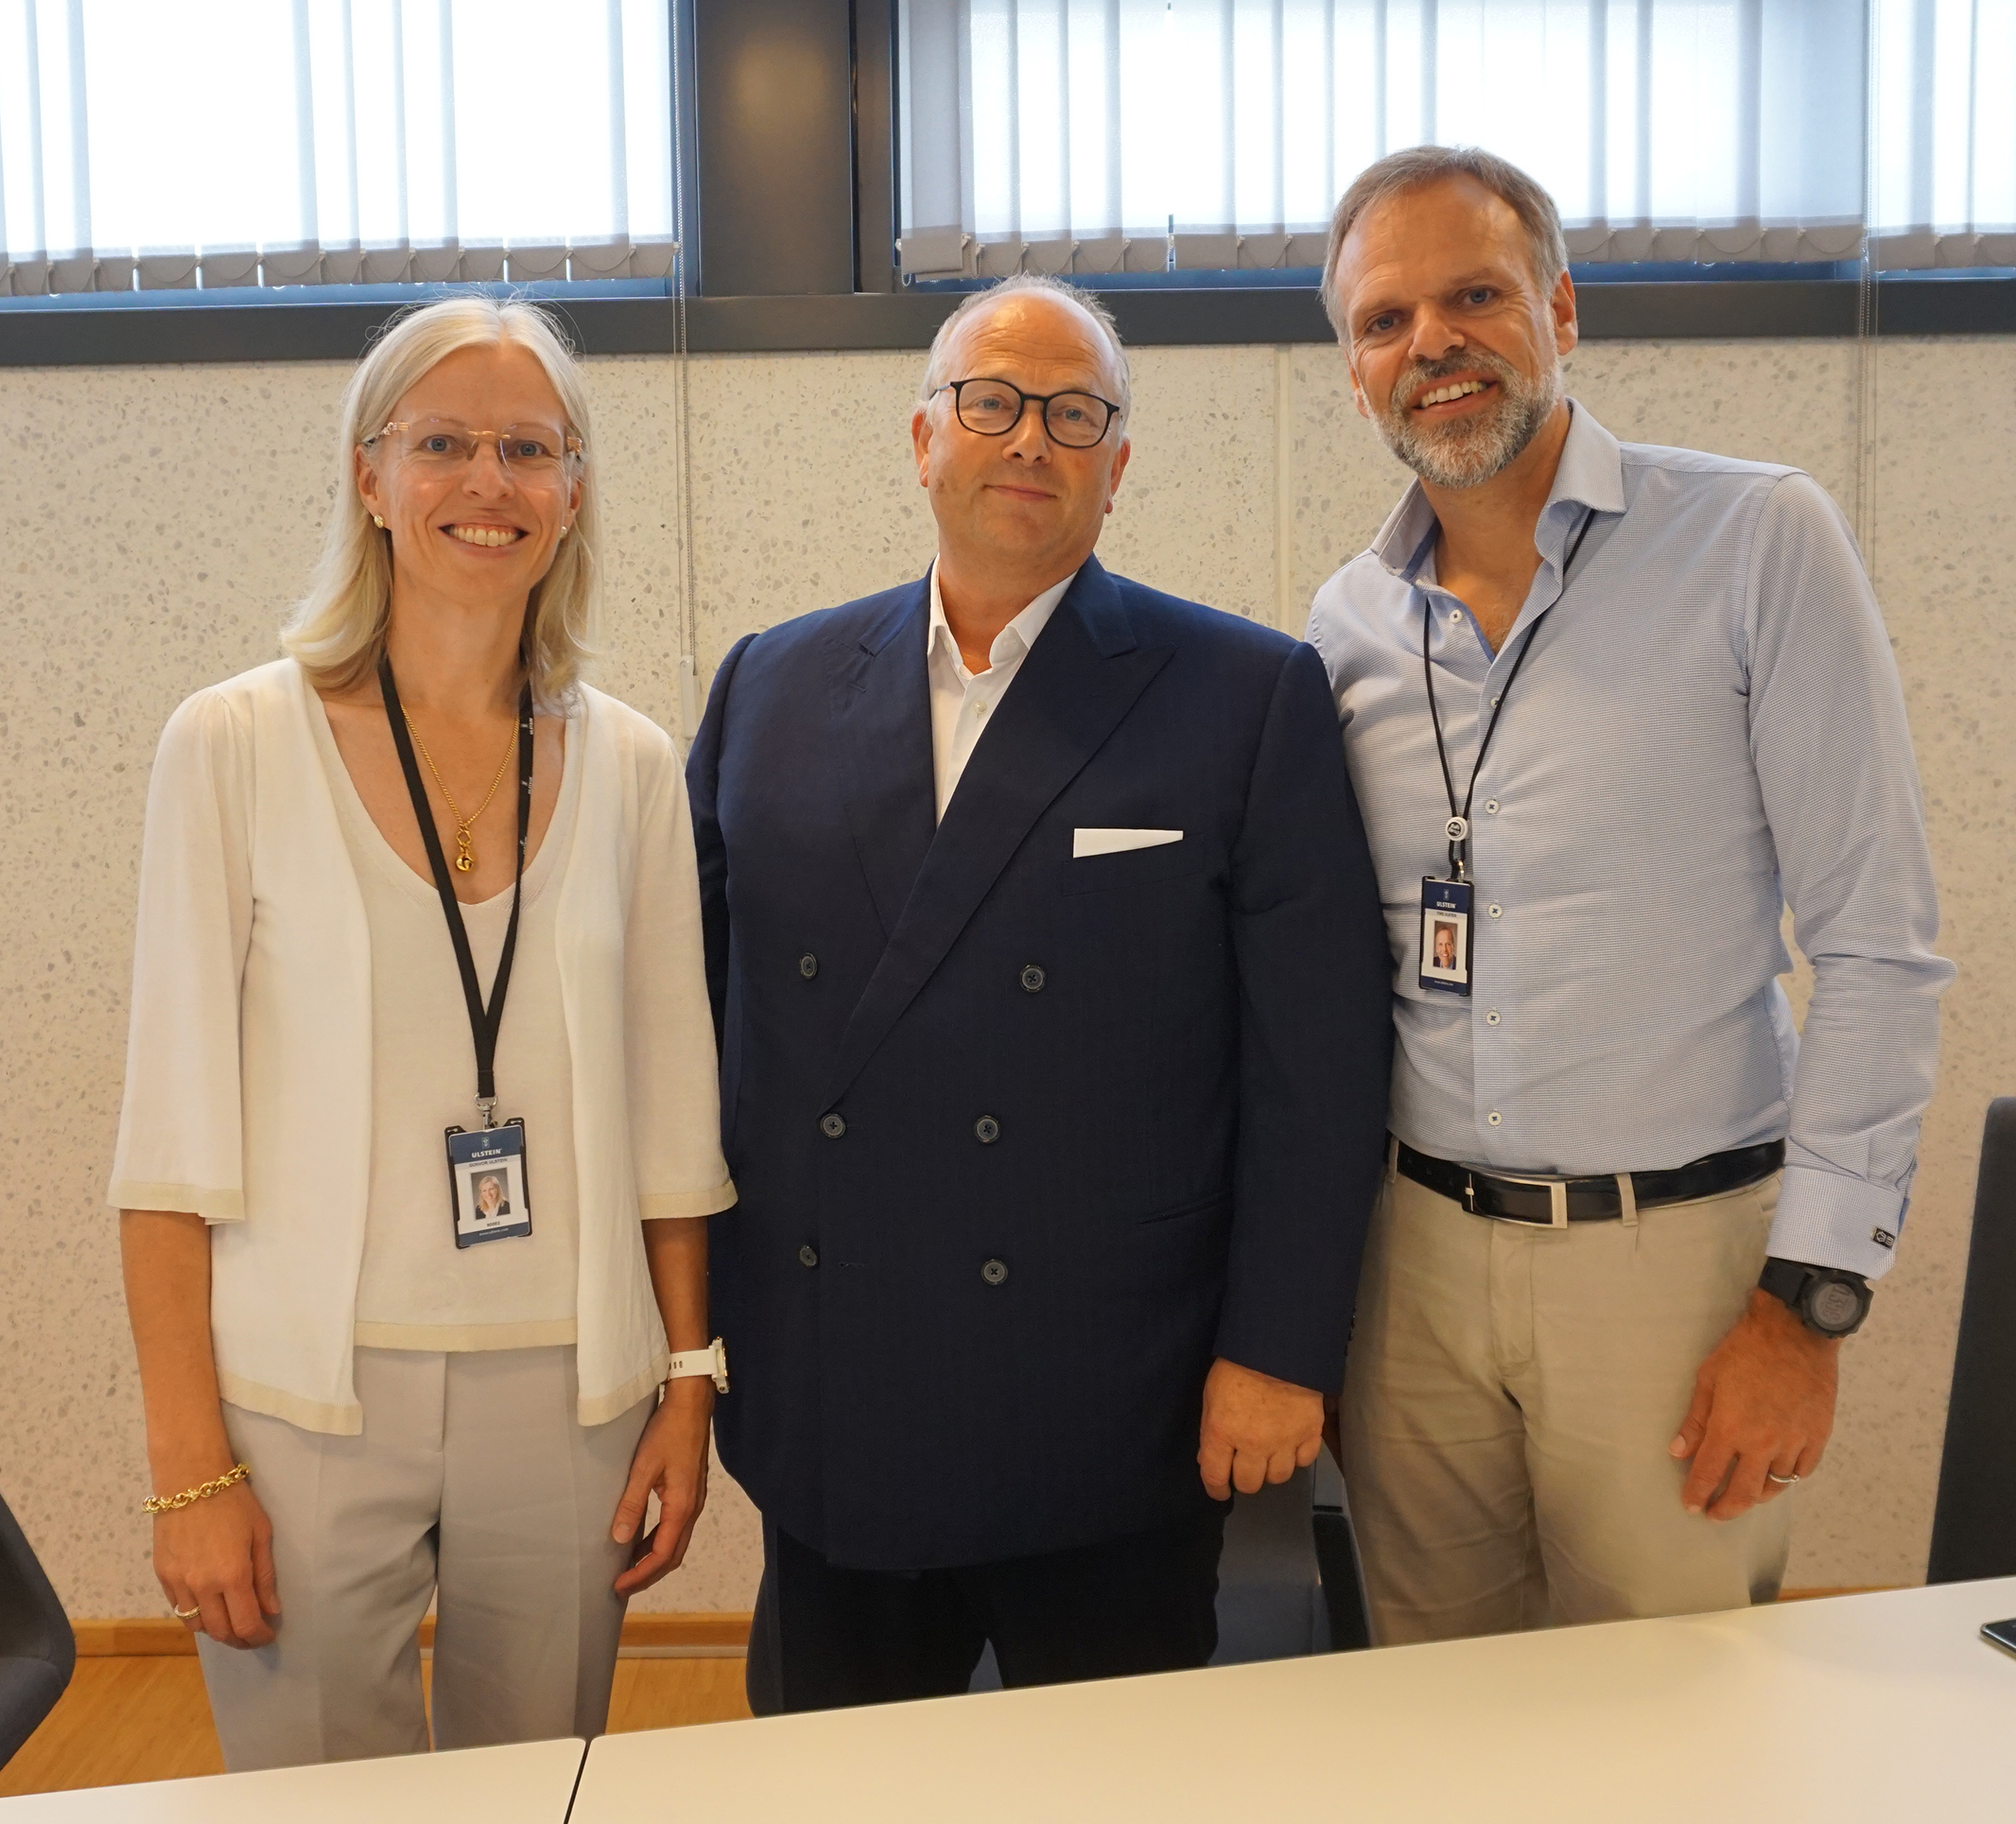 From left: Gunvor Ulstein - CEO Ulstein Group, Trond Kleivdal - CEO Color Line, and Tore Ulstein - deputy CEO Ulstein Group.